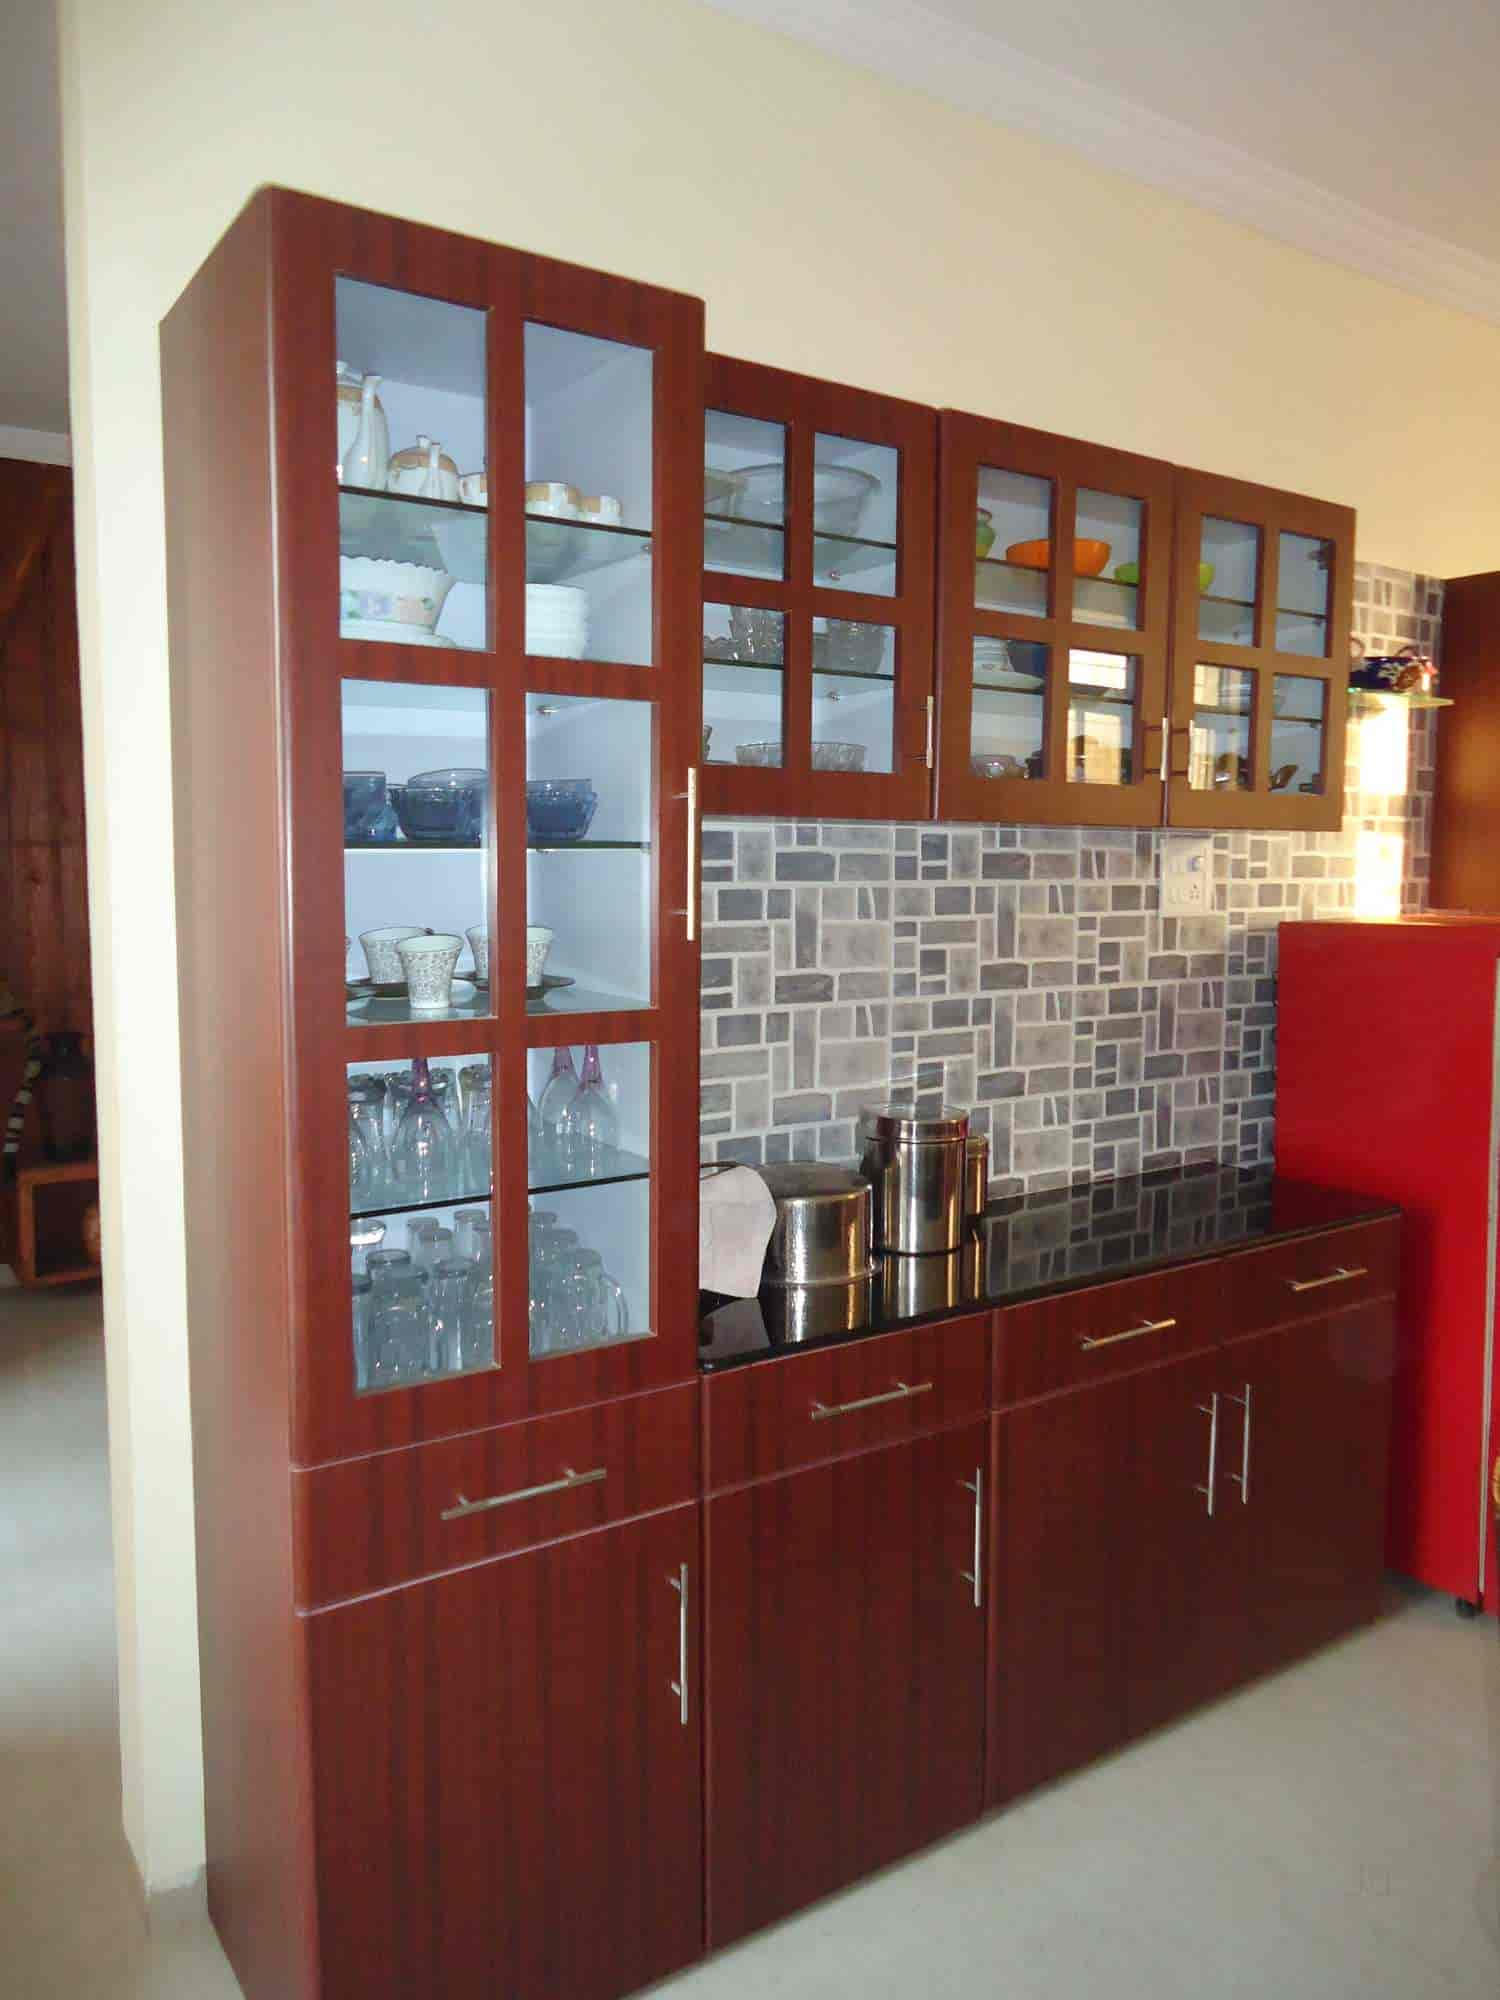 mona furniture and kitchen trolley photos, warje, pune- pictures